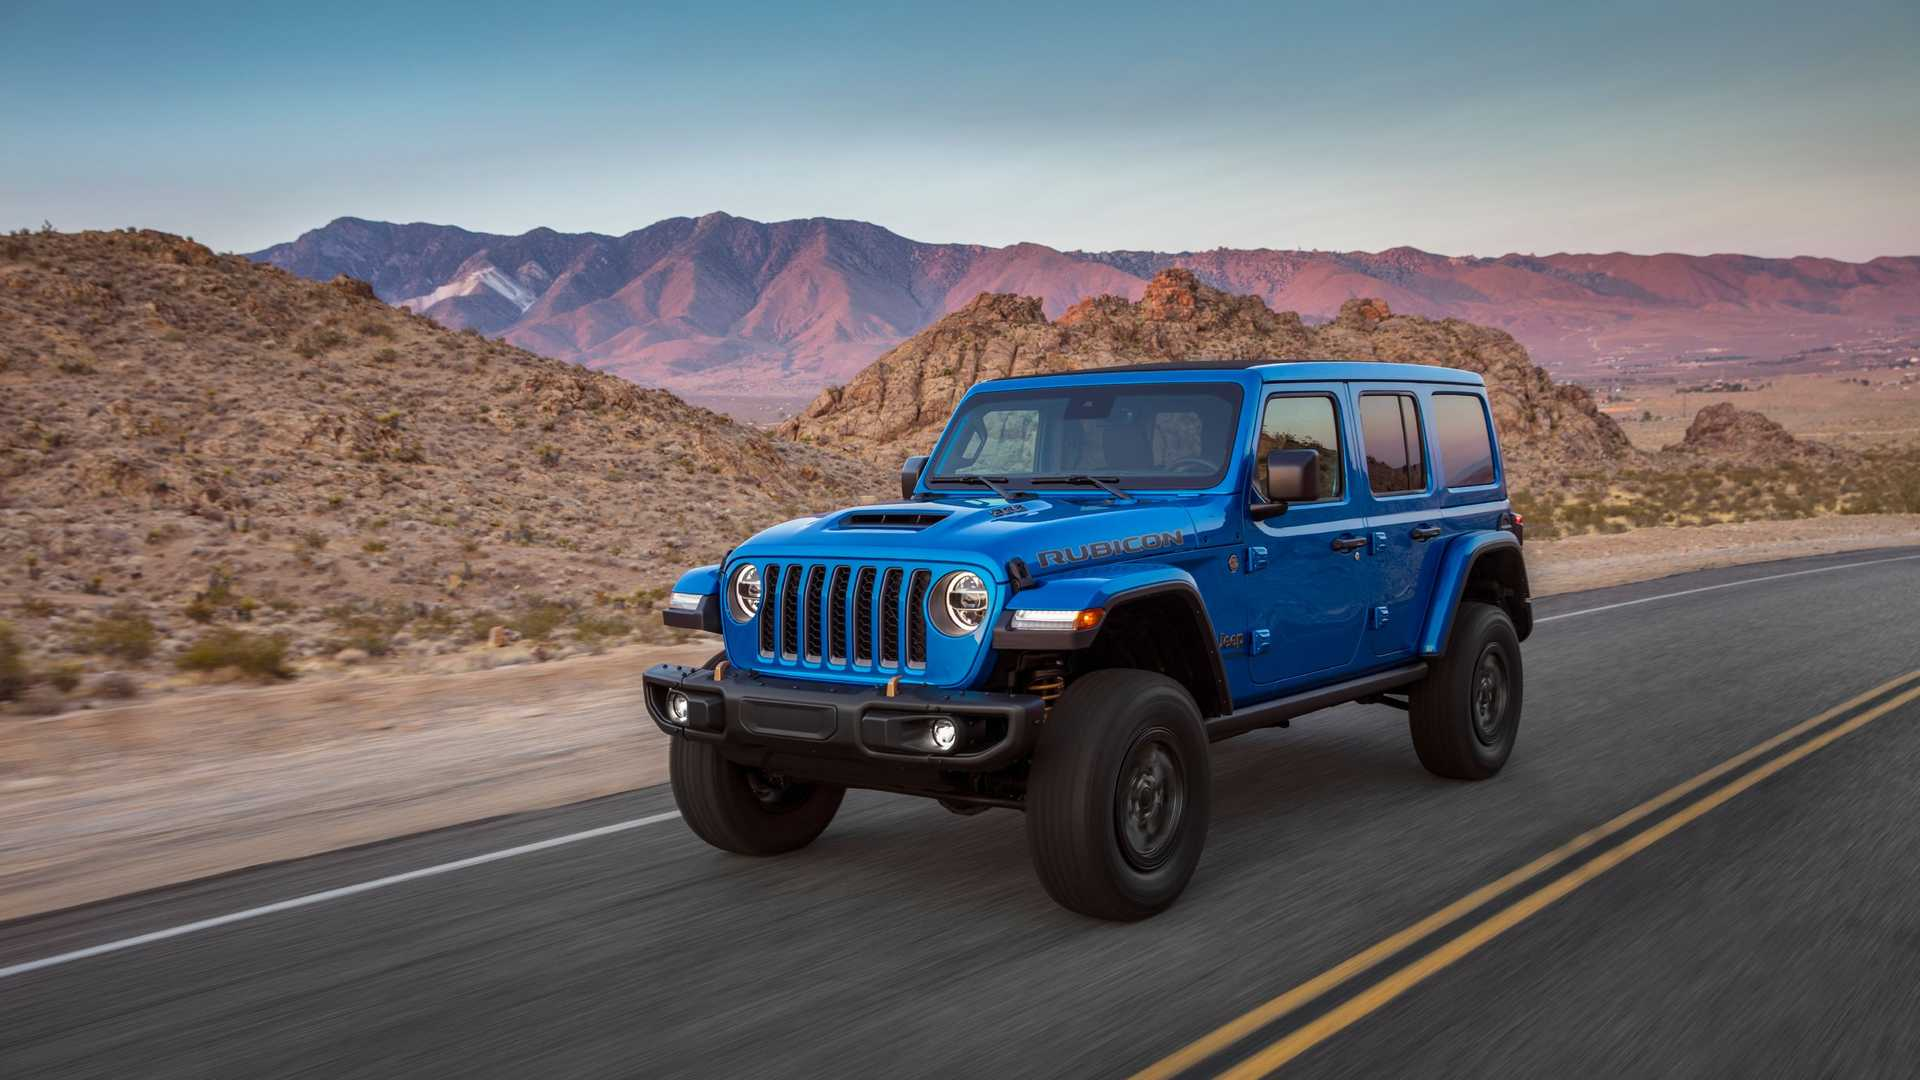 2021-jeep-wrangler-rubicon-392-front-view-4